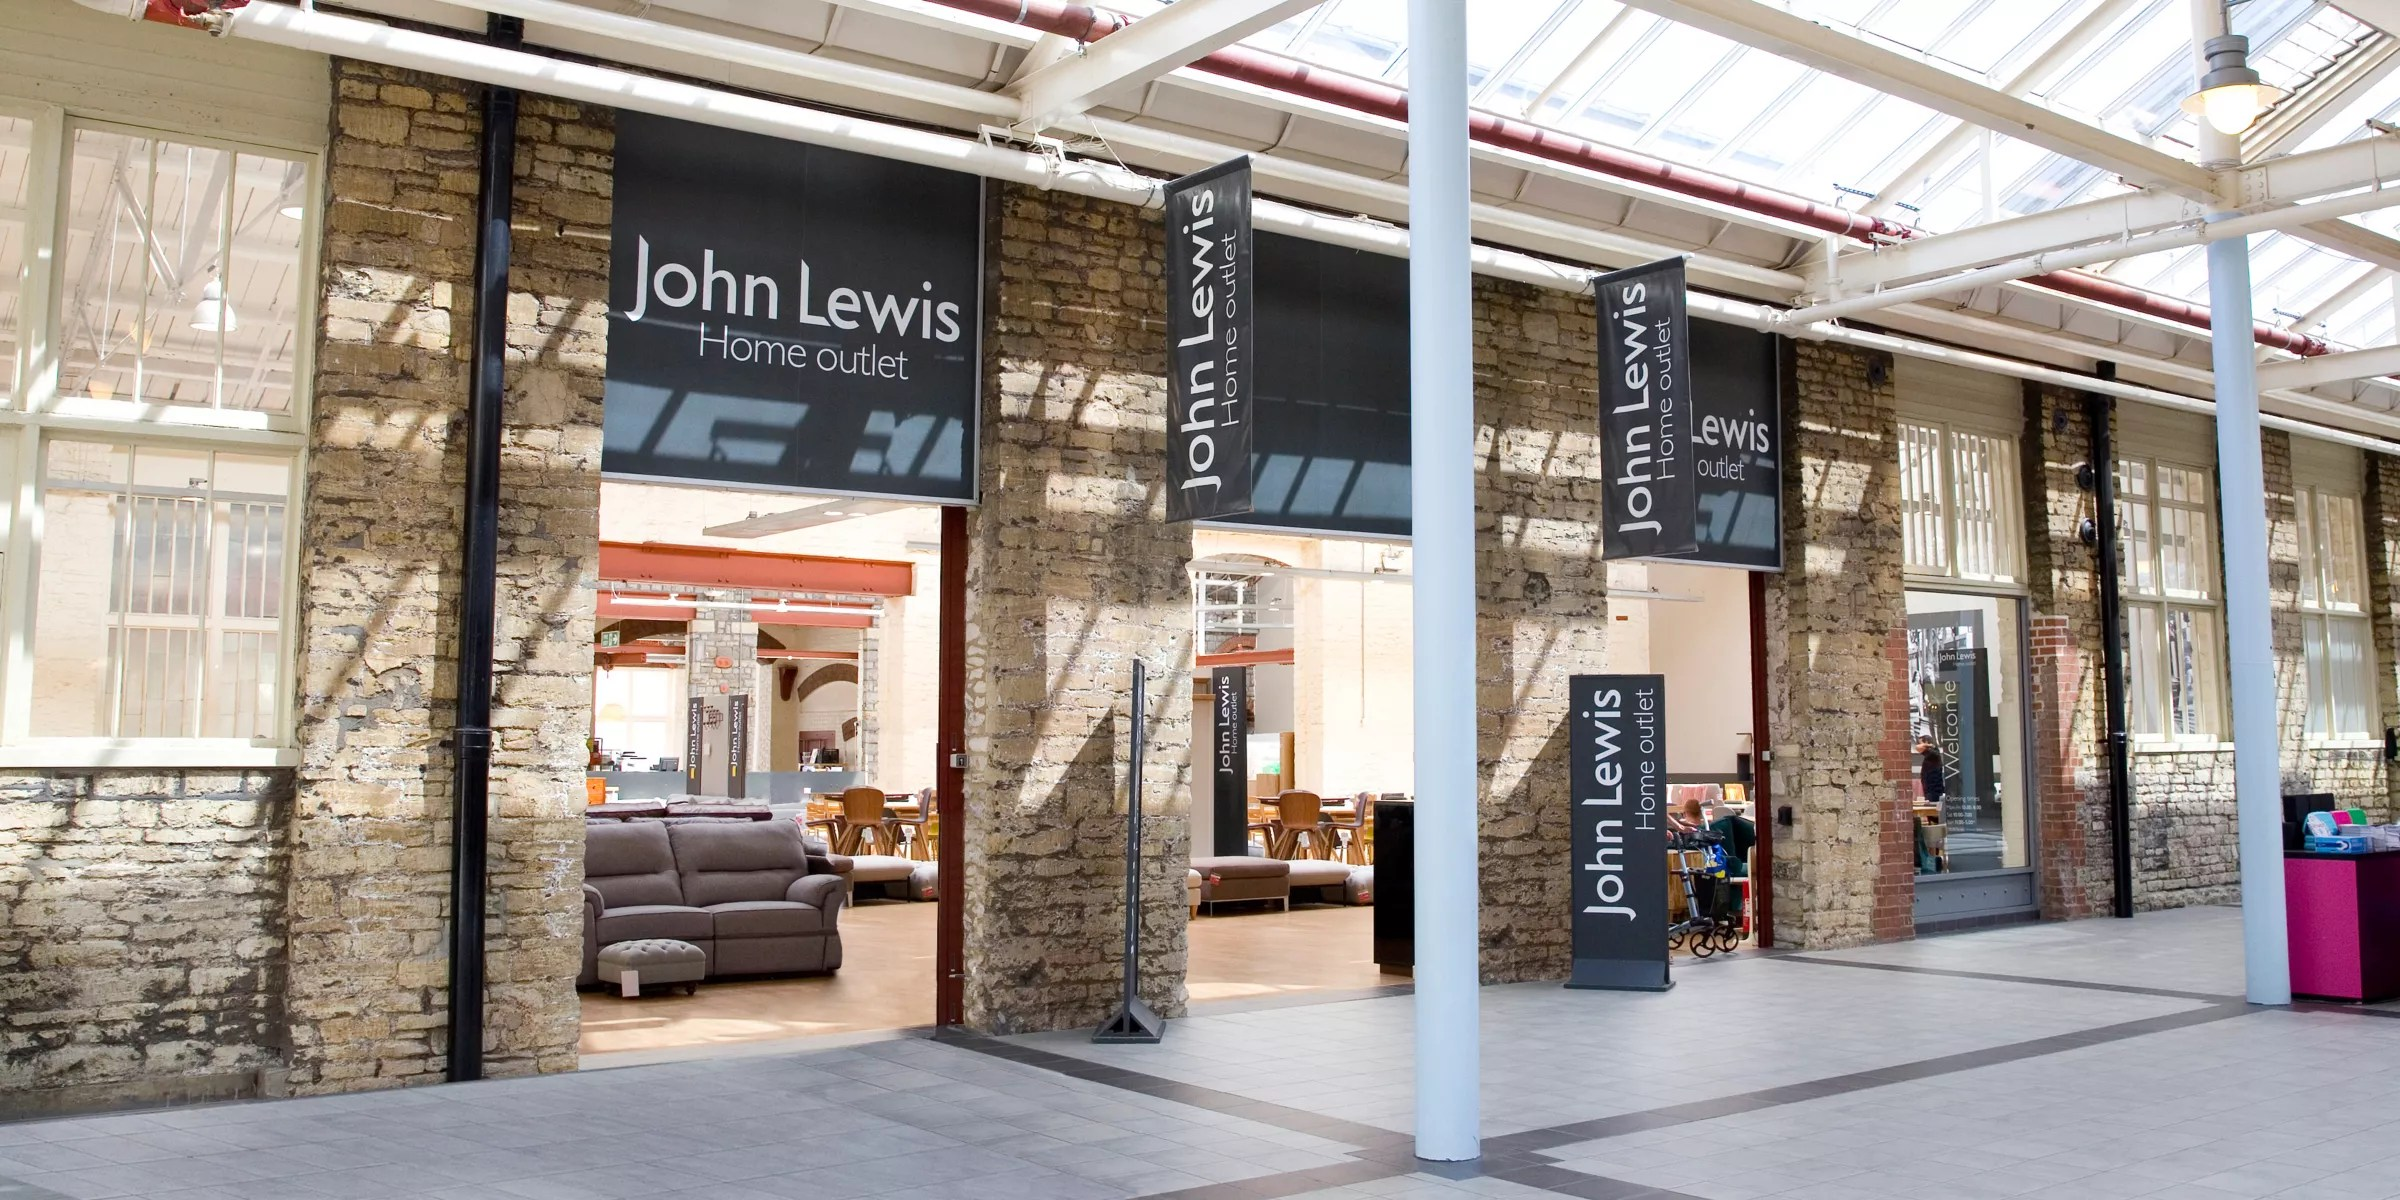 Teppich Online Outlet Swindon Outlet John Lewis Partners